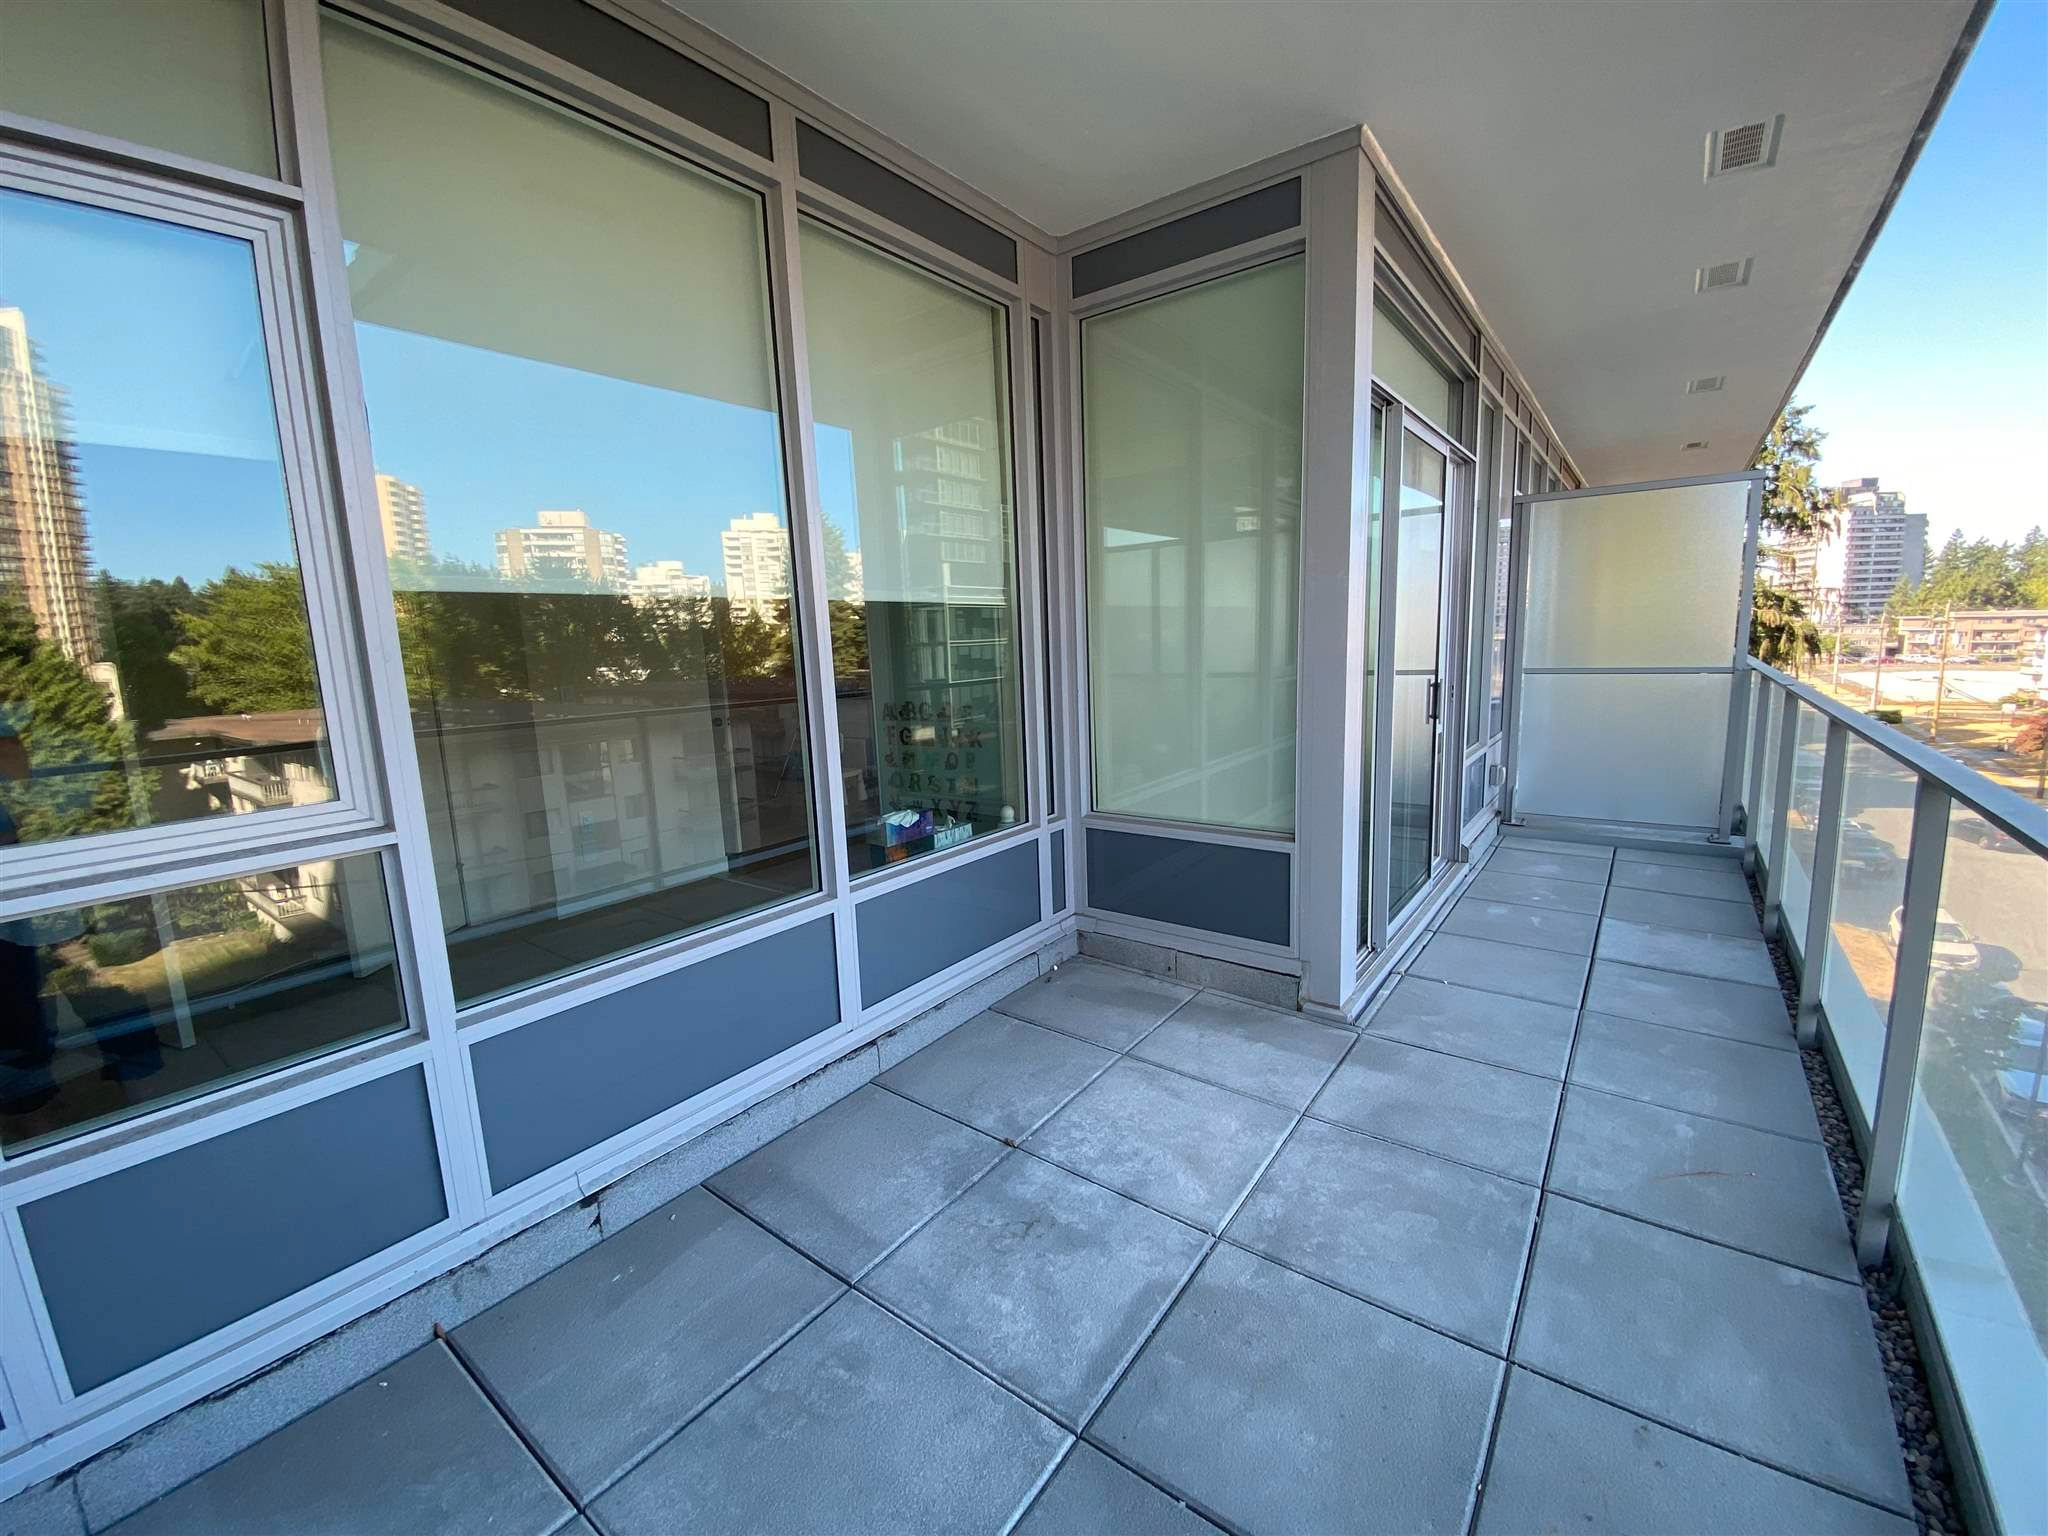 """Photo 19: Photos: 308 6288 CASSIE Avenue in Burnaby: Metrotown Condo for sale in """"GOLD HOUSE SOUTH TOWER"""" (Burnaby South)  : MLS®# R2606367"""